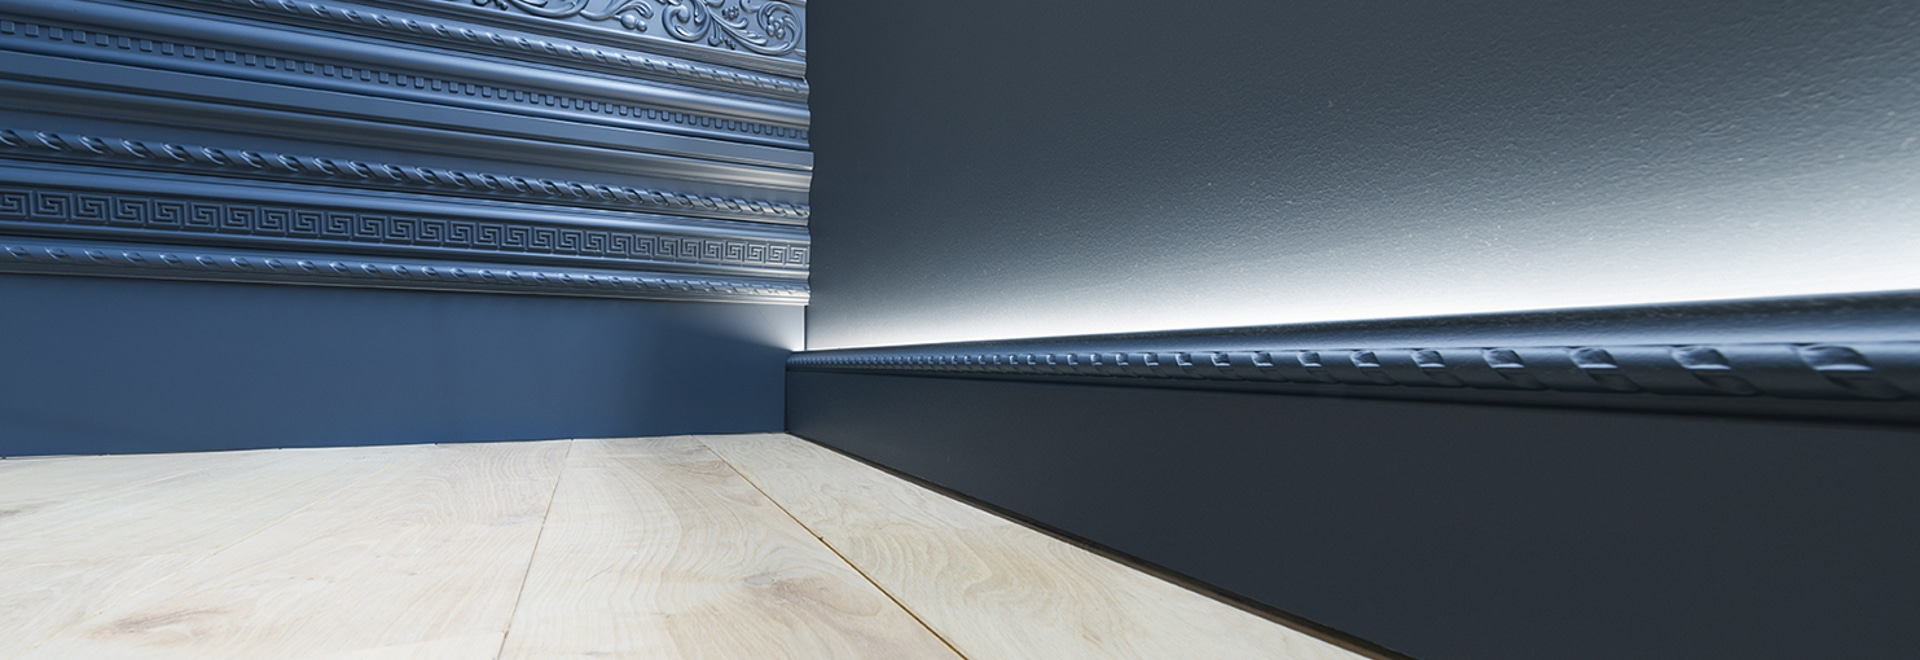 Decorative mouldings for indirect lighting